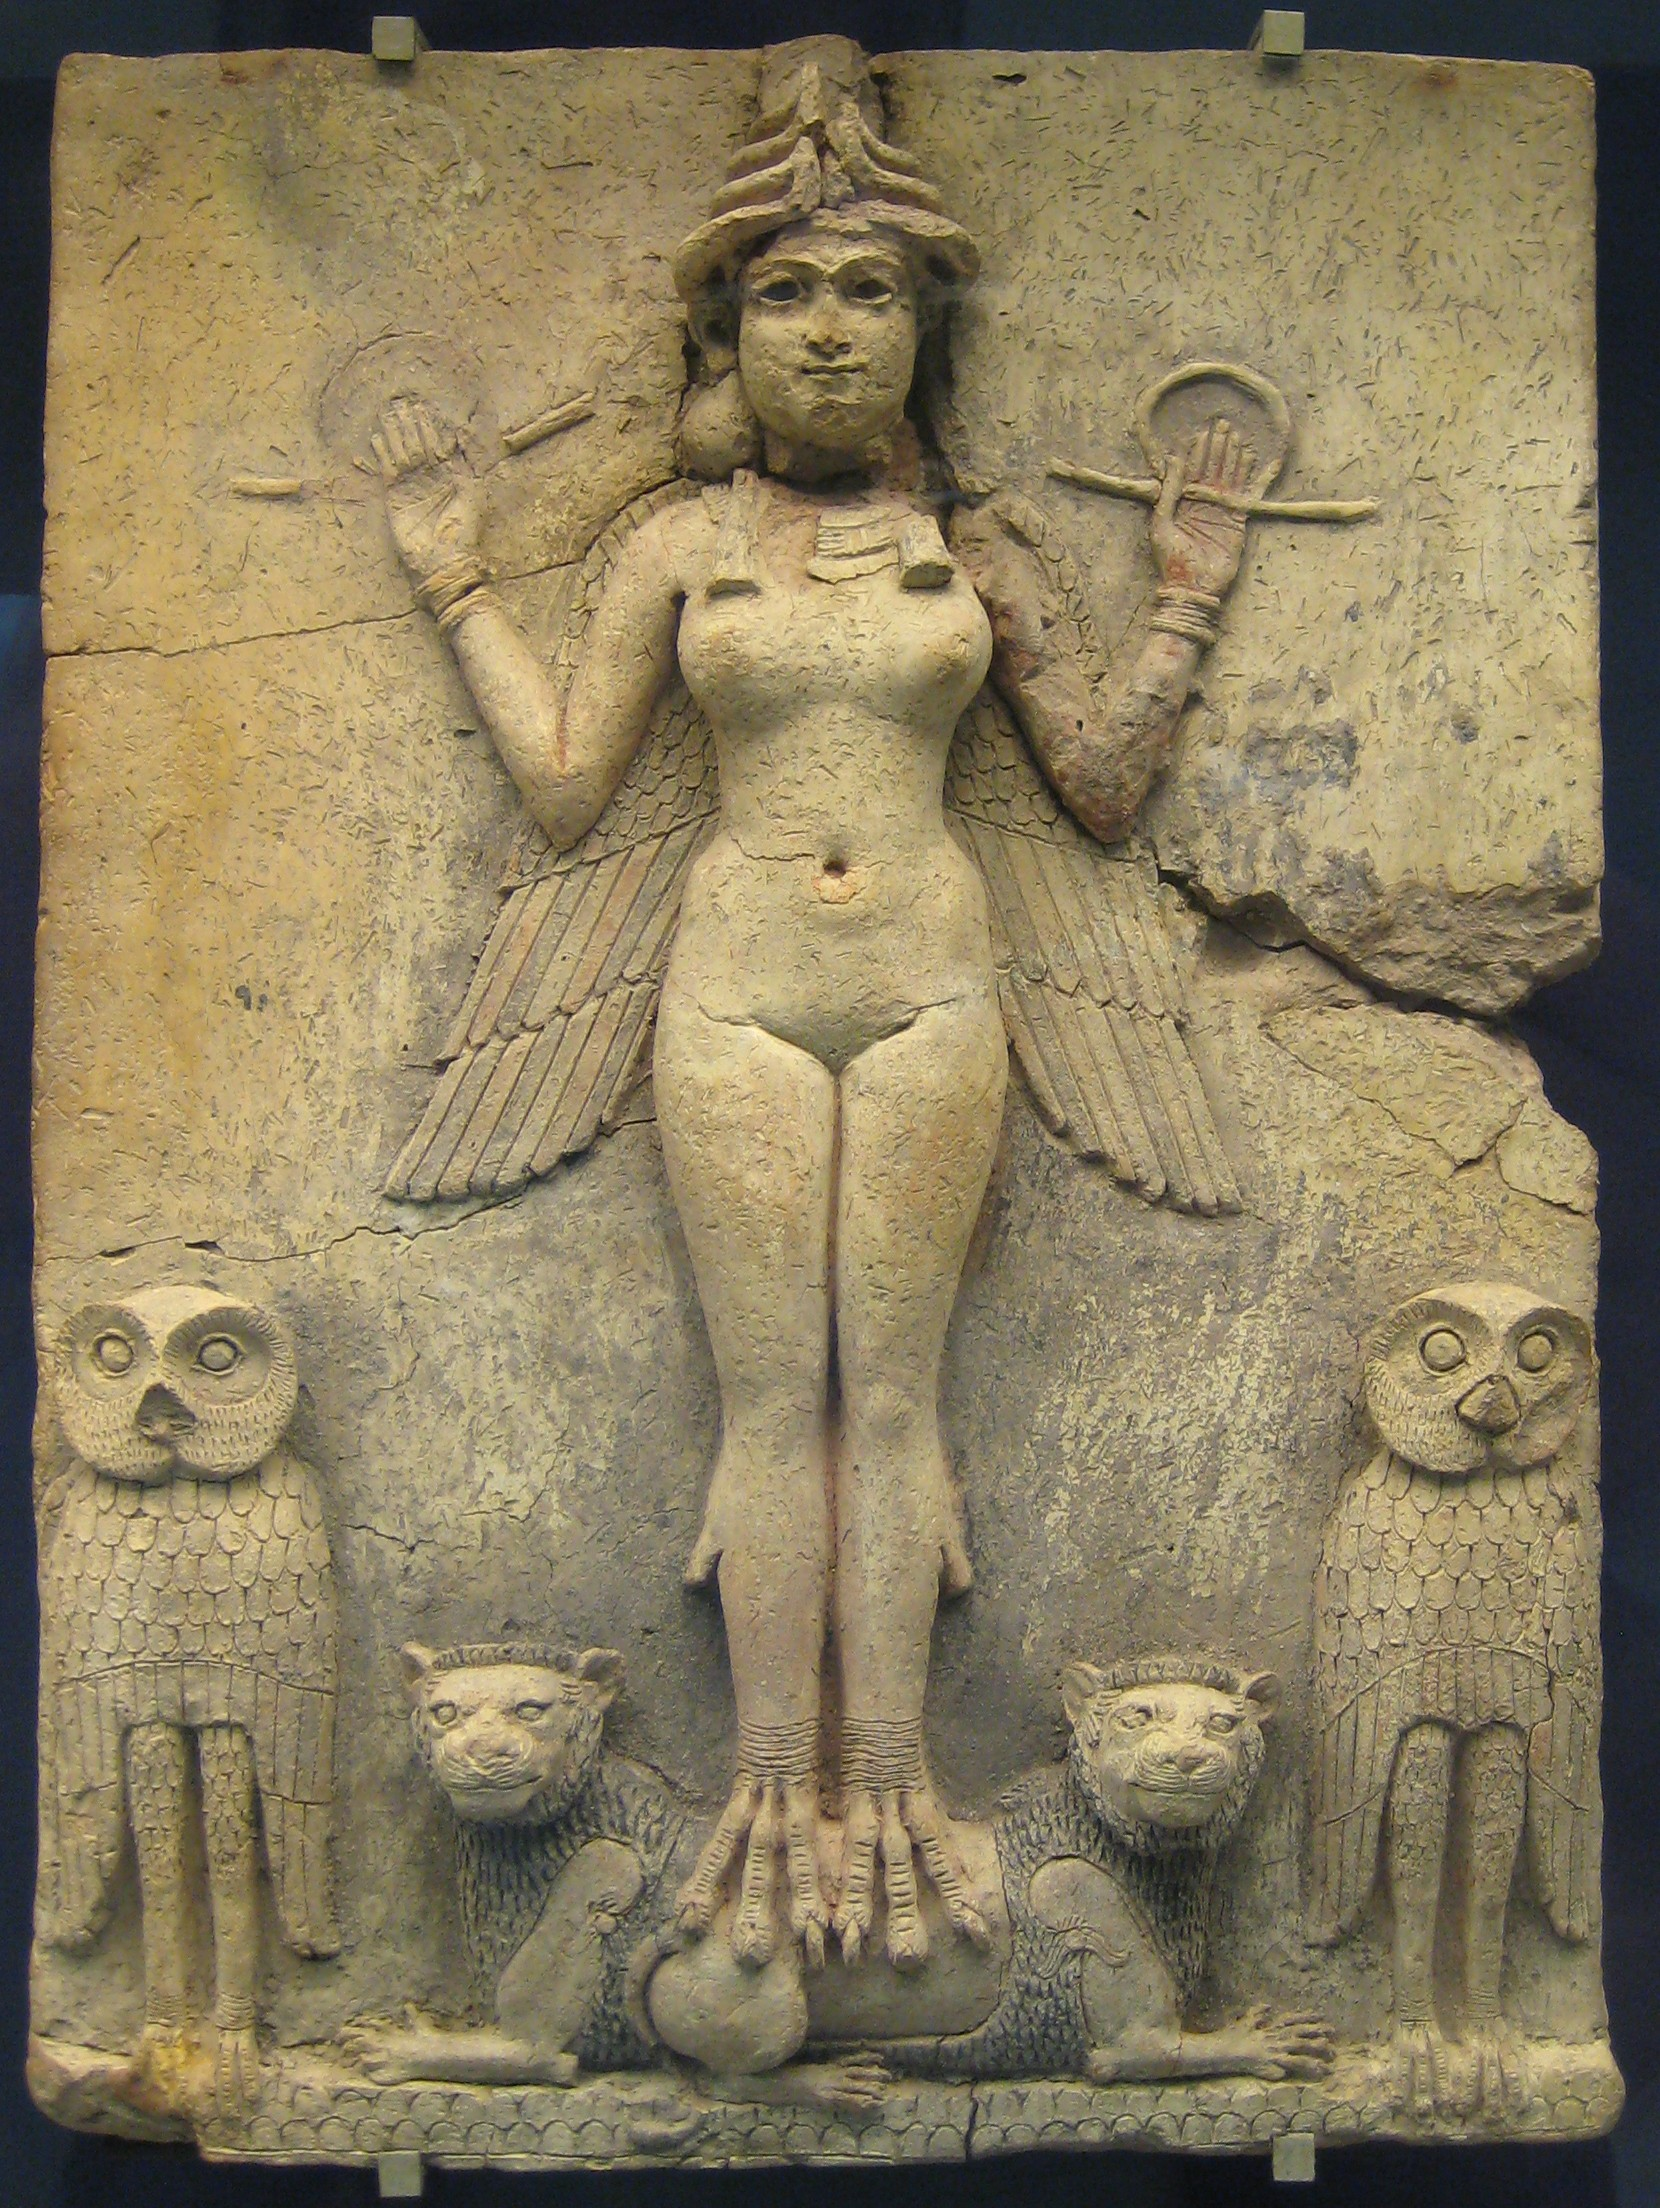 This is the Queen of Night relief from the British museum, depicted with the animal symbols of Ishtar, lionesses and owls.